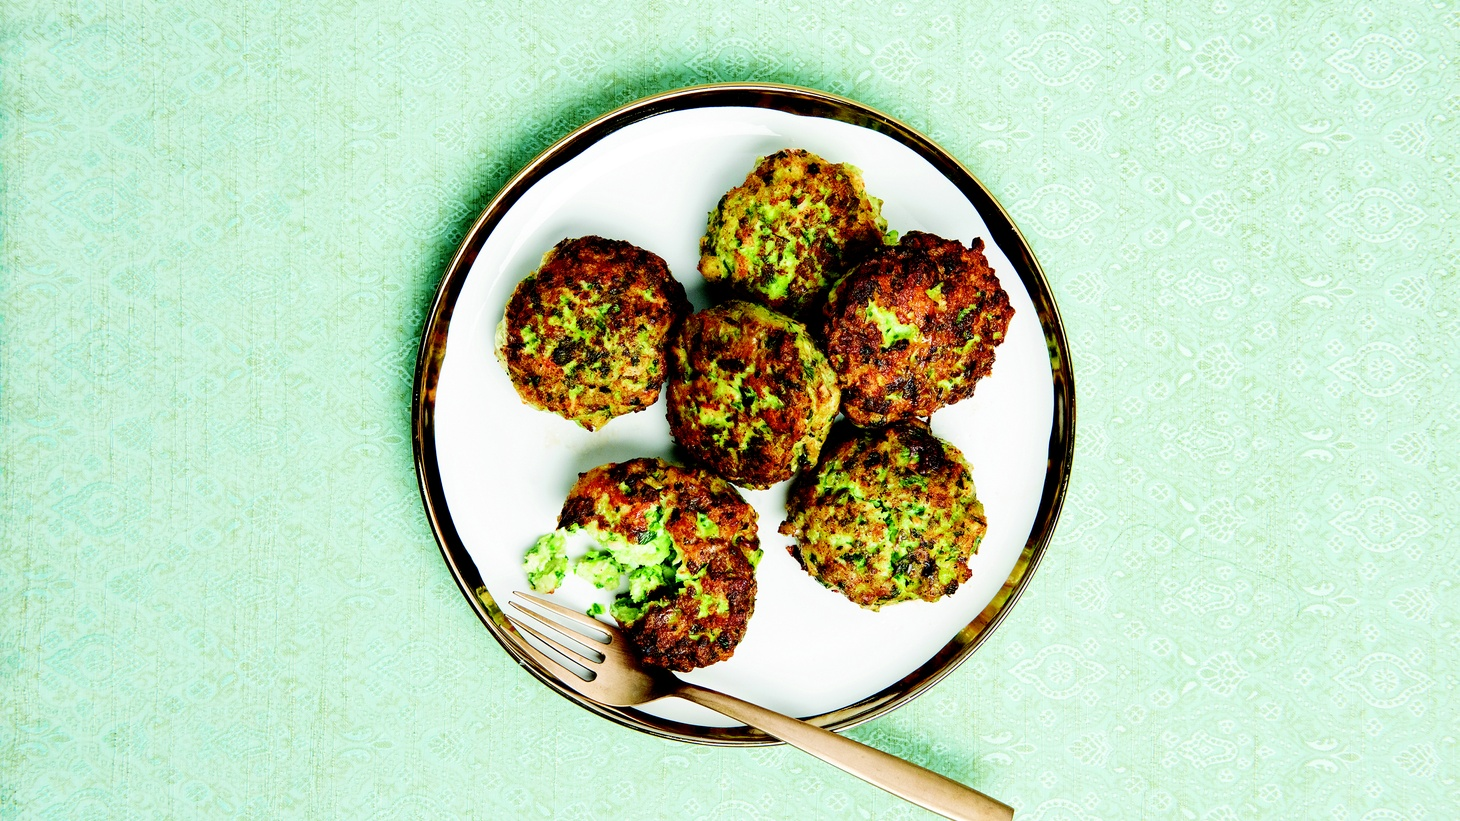 The original latkes were made with cheese, not potatoes. Leah Koenig recommends fried fritters, including these chicken fritters with scallion and ginger to celebrate Hanukkah this year.